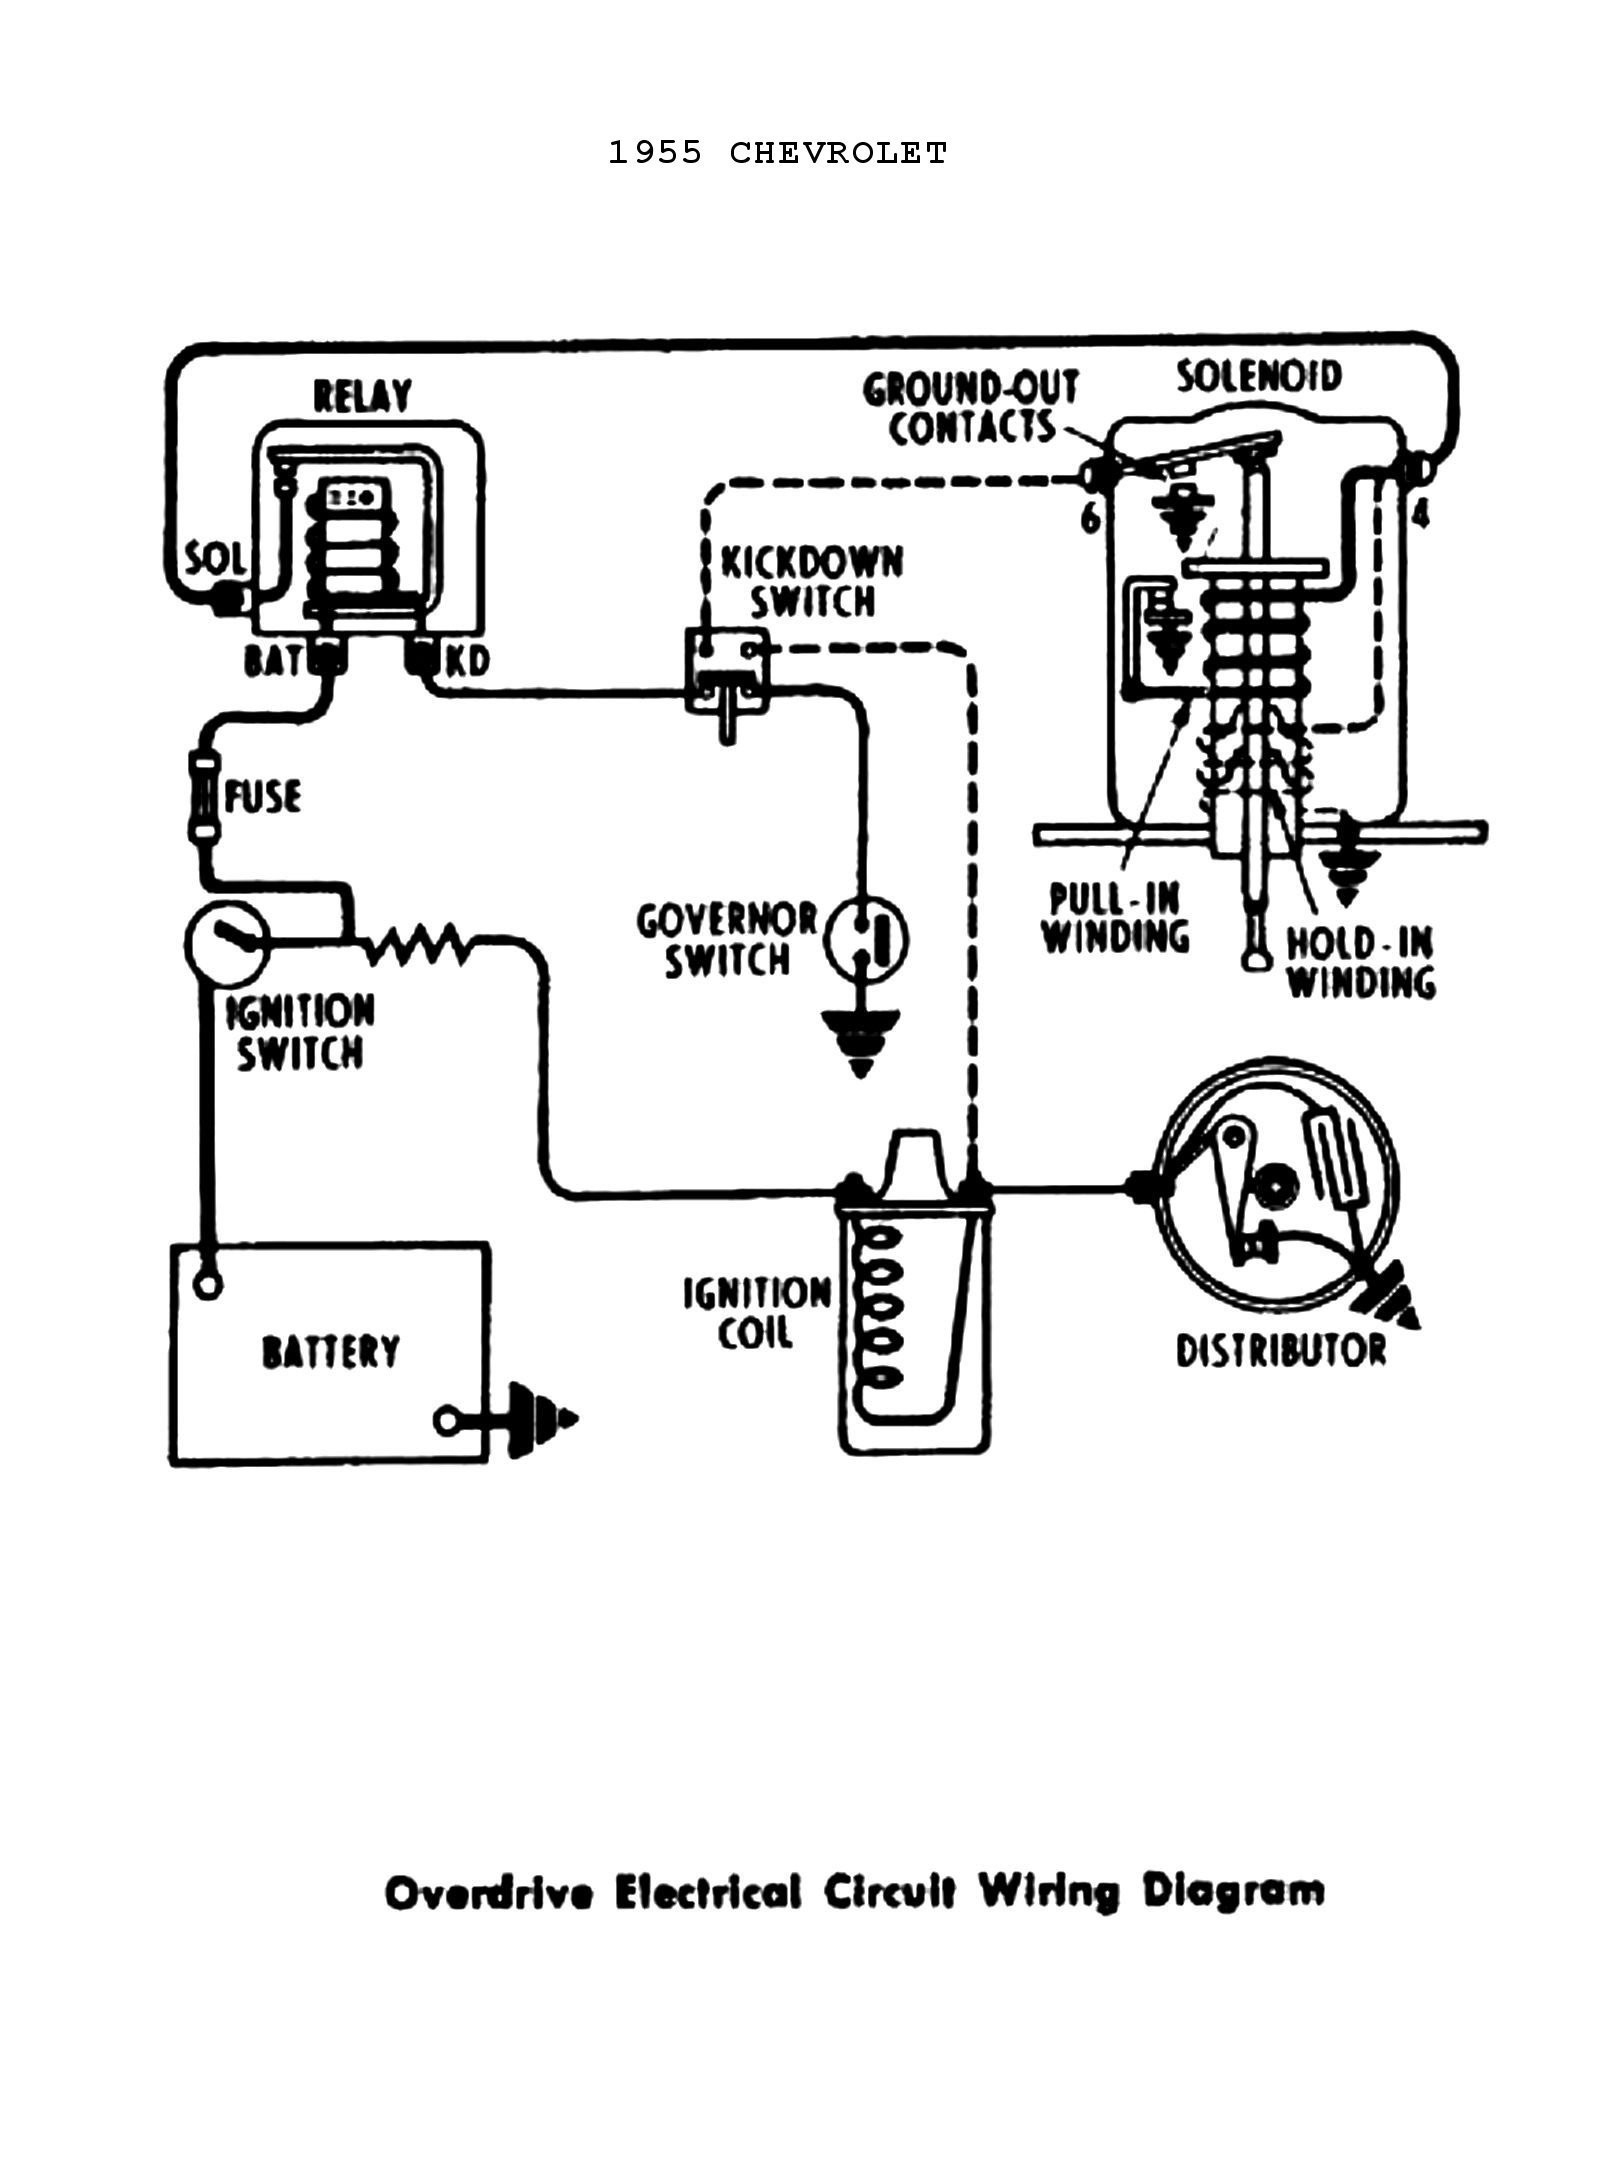 Forest River Water Heater Bypass : forest, river, water, heater, bypass, Points, Ignition, Wiring, Diagram, Export, Name-bitter, Name-bitter.congressosifo2018.it